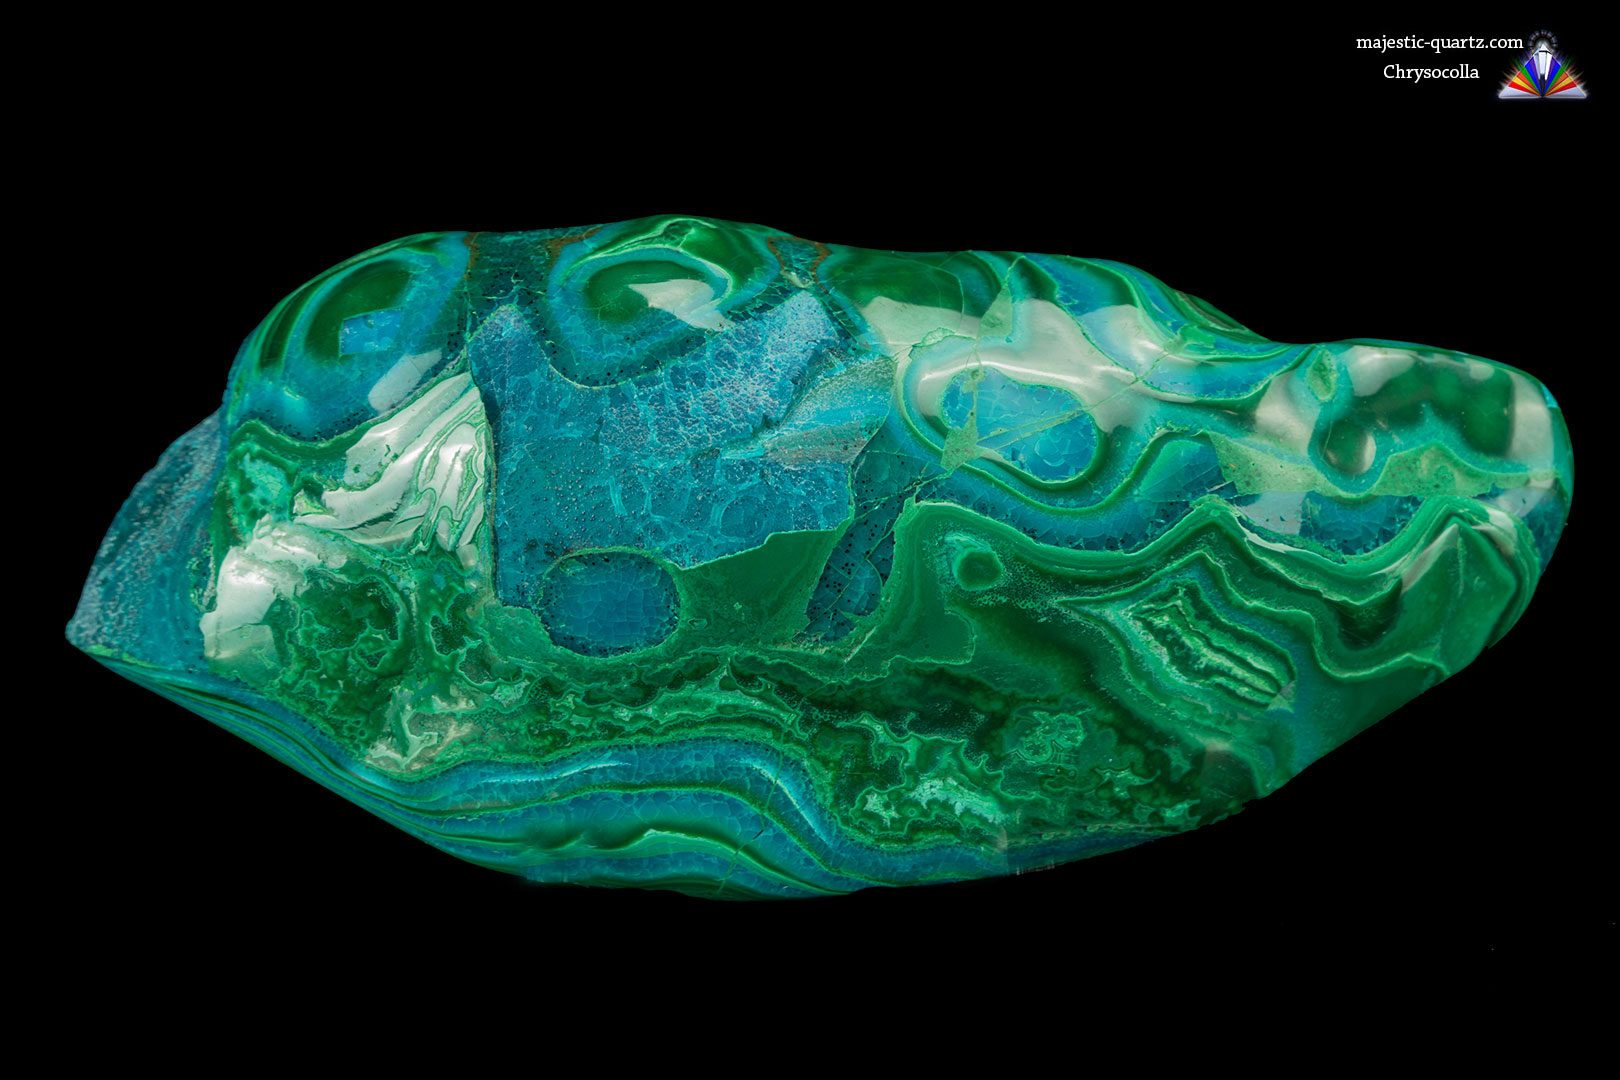 Polished Chrysocolla Specimen - Photograph by Anthony Bradford